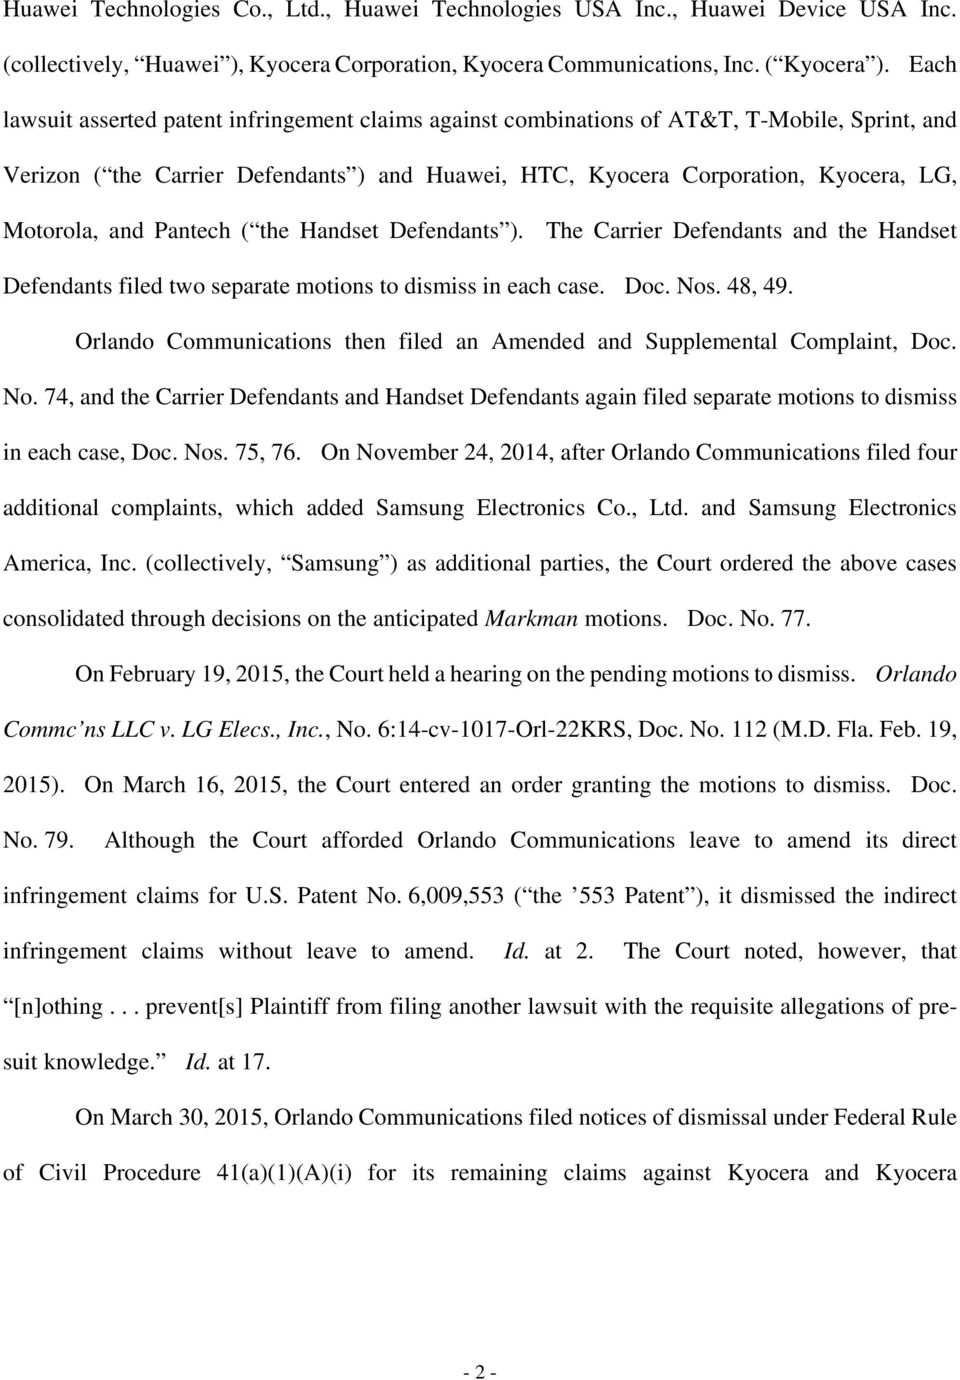 and Pantech ( the Handset Defendants ). The Carrier Defendants and the Handset Defendants filed two separate motions to dismiss in each case. Doc. Nos. 48, 49.